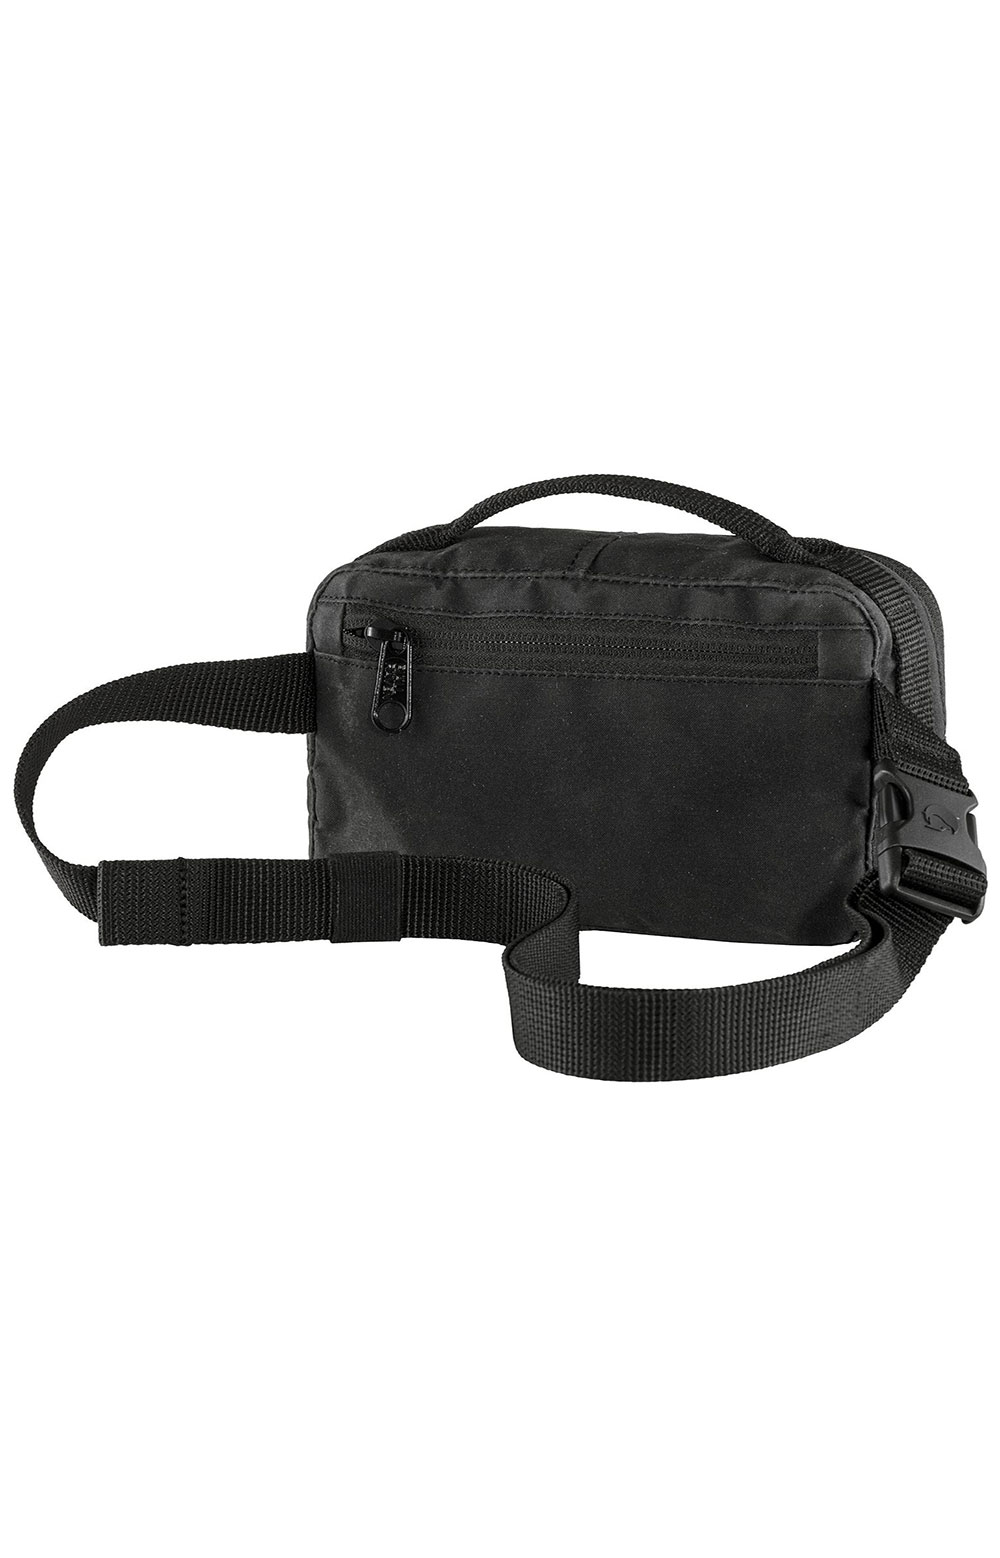 Kanken Hip Pack - Black  2